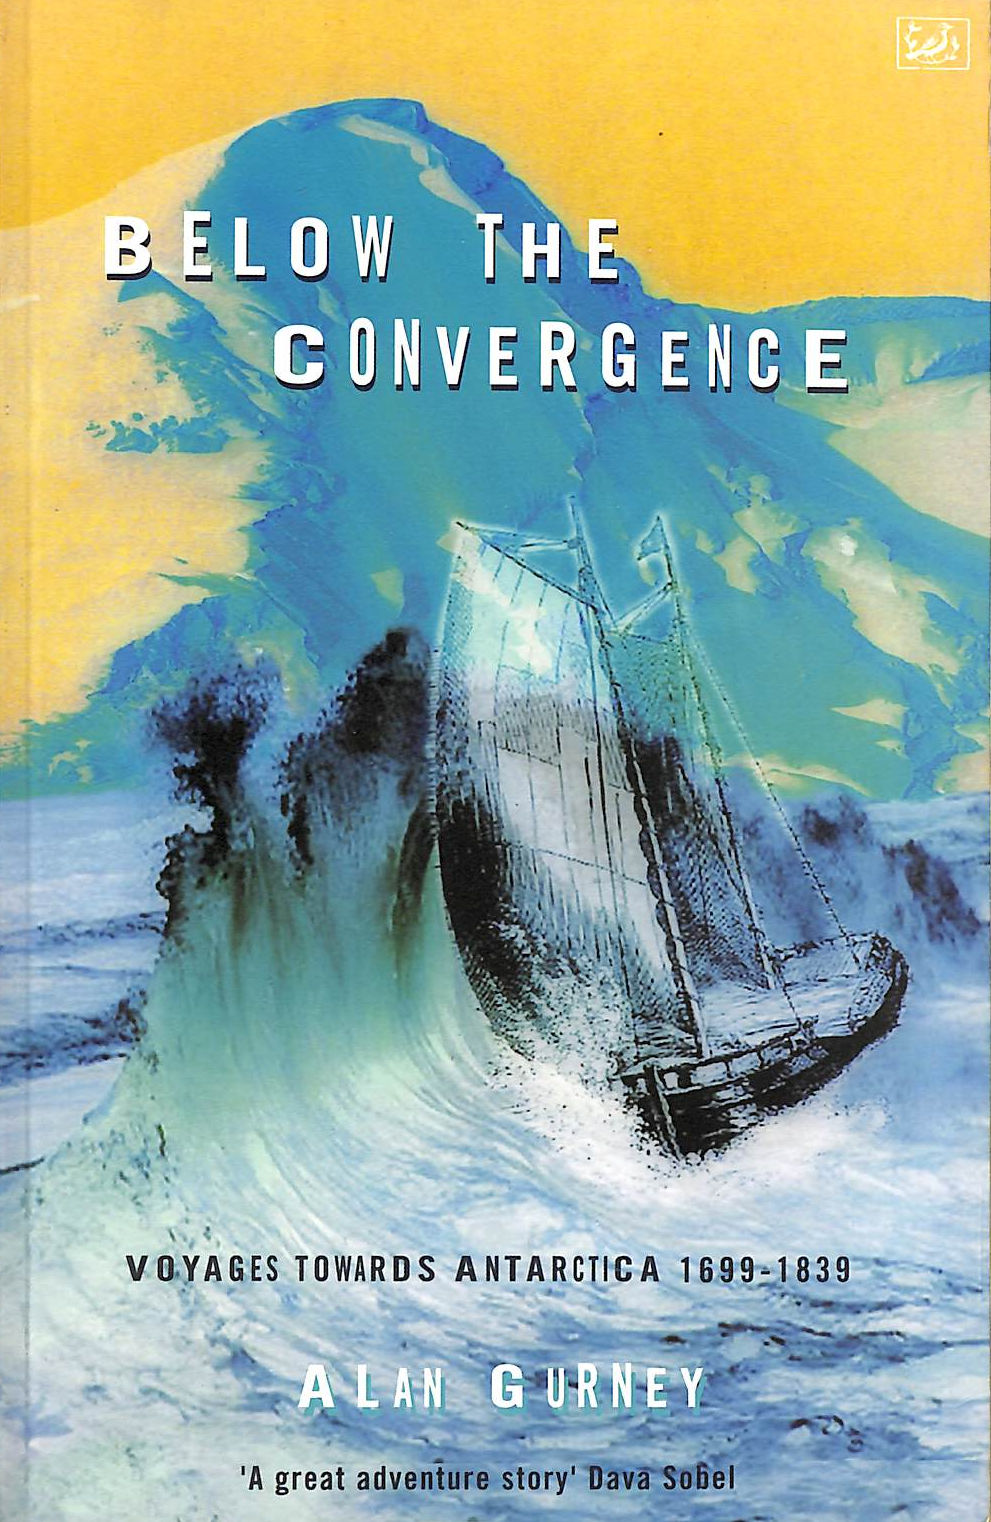 Image for Below The Convergence: Voyages Towards Antarctica 1699-1839